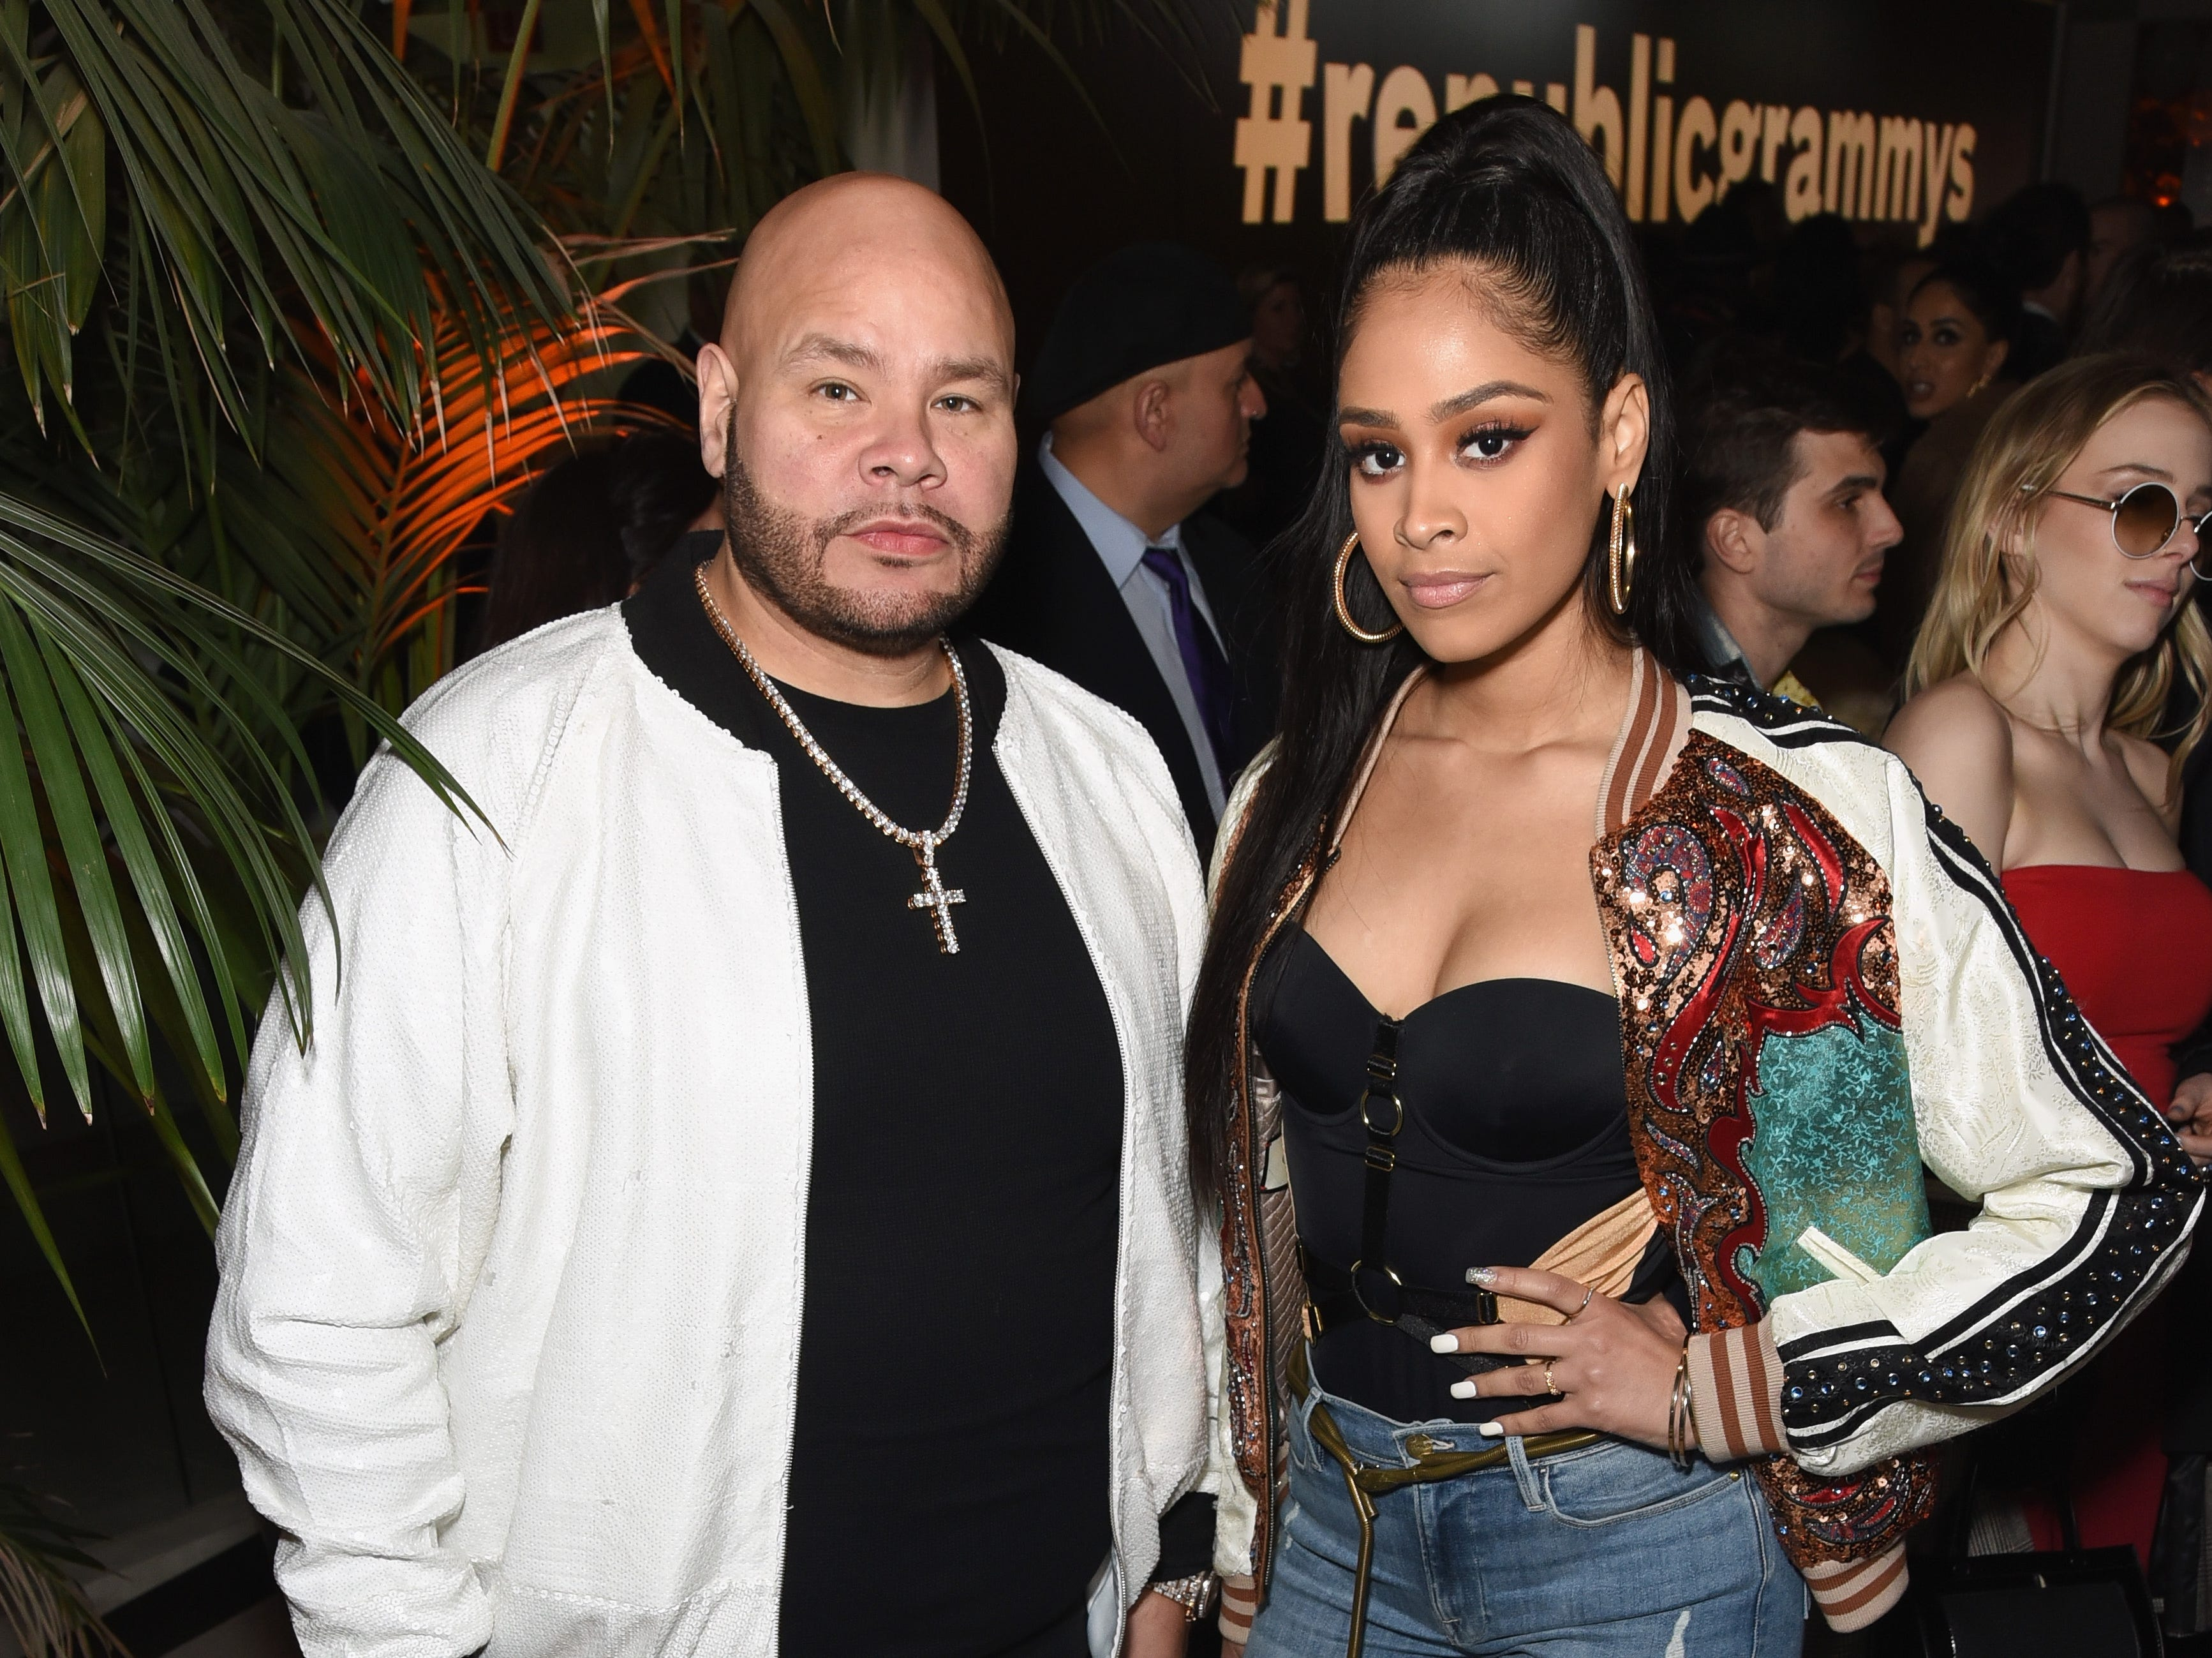 Fat Joe and Lorena Cartagena during Republic Records Grammy after party on Feb. 10, 2019 in Beverly Hills, Calif.